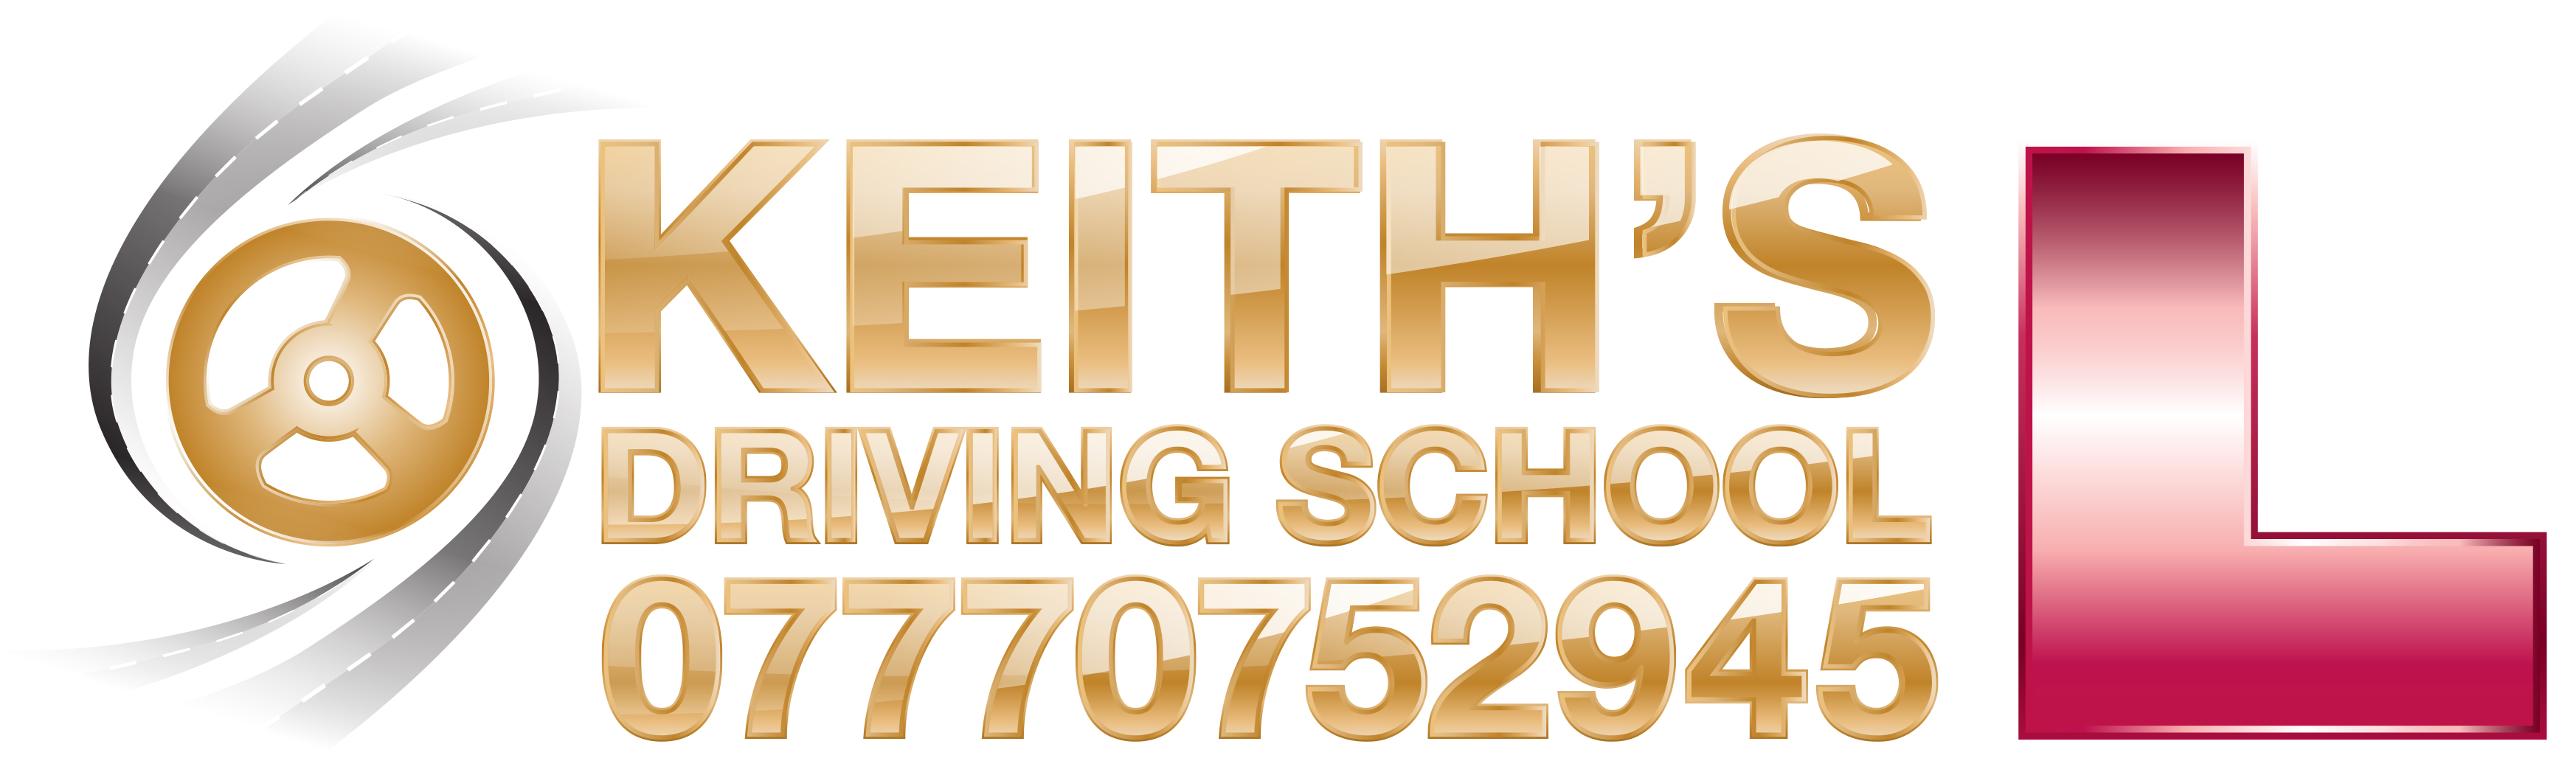 Keith Driving School